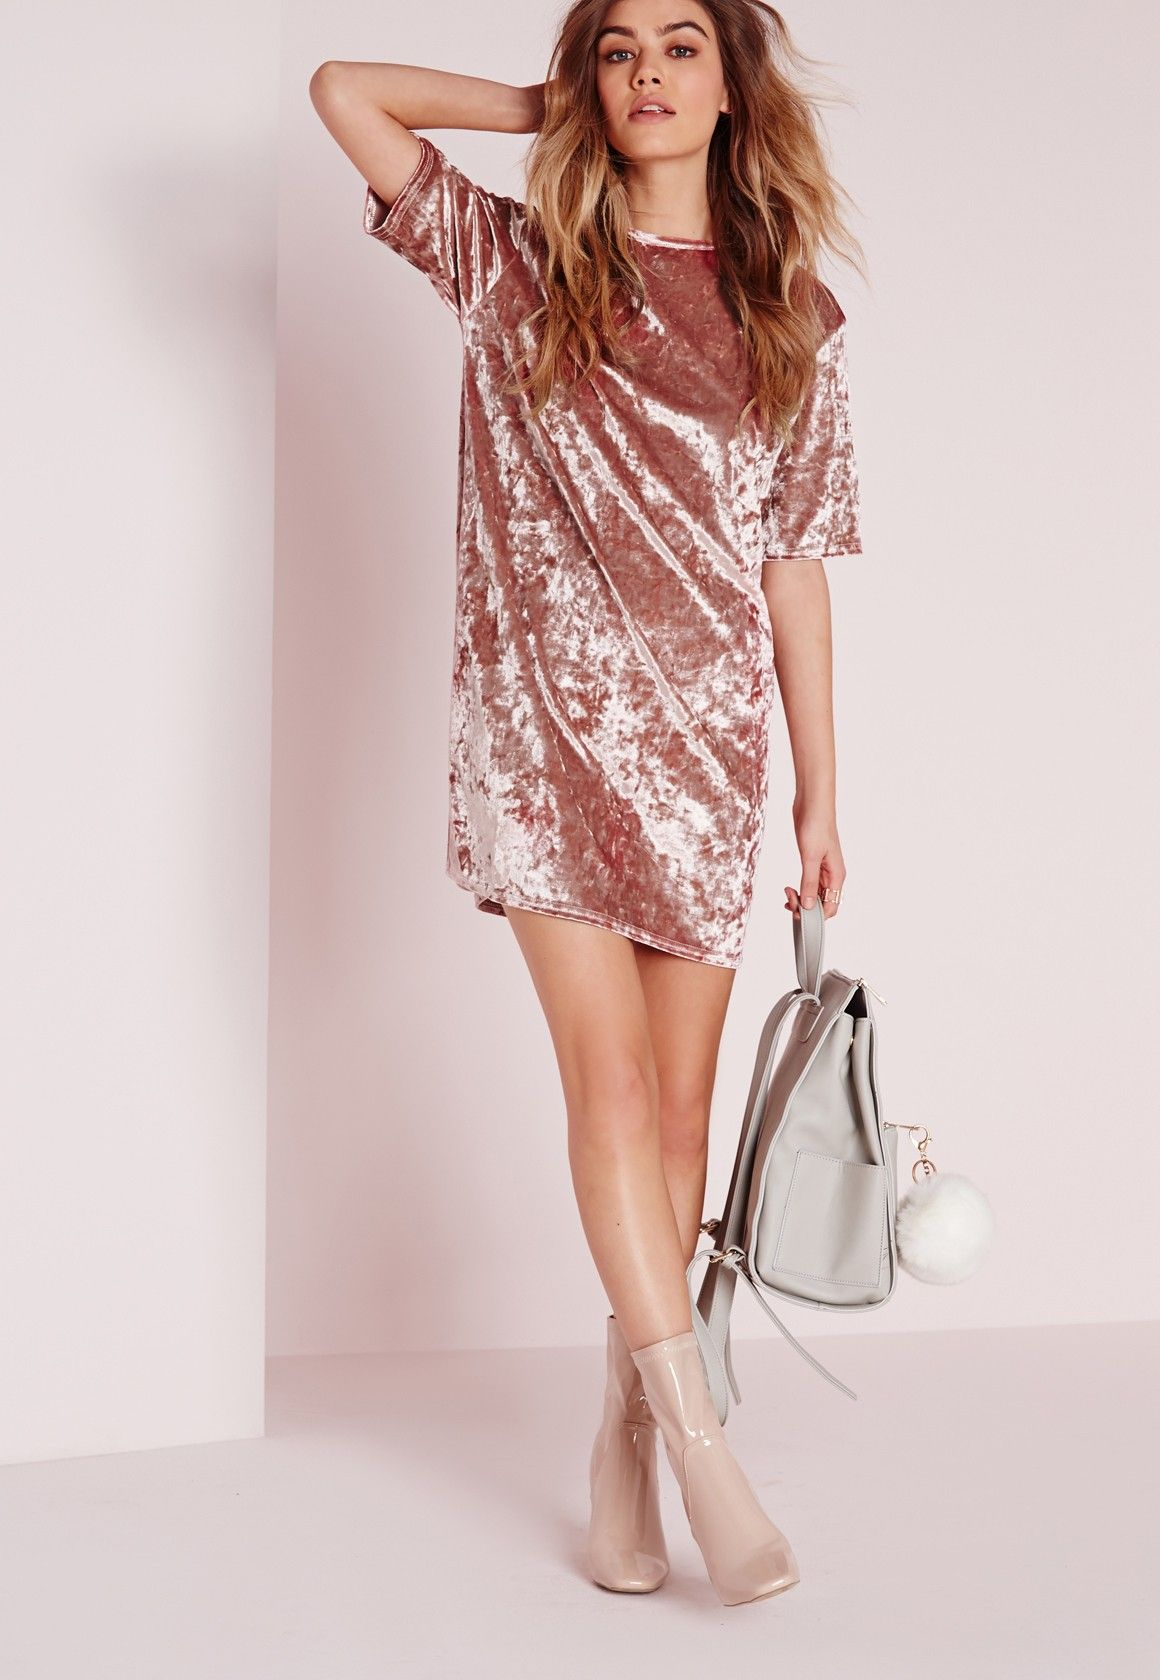 We are totally crushinu0026#39; on this crushed velvet dress here at Missguided HQ right now and who ...